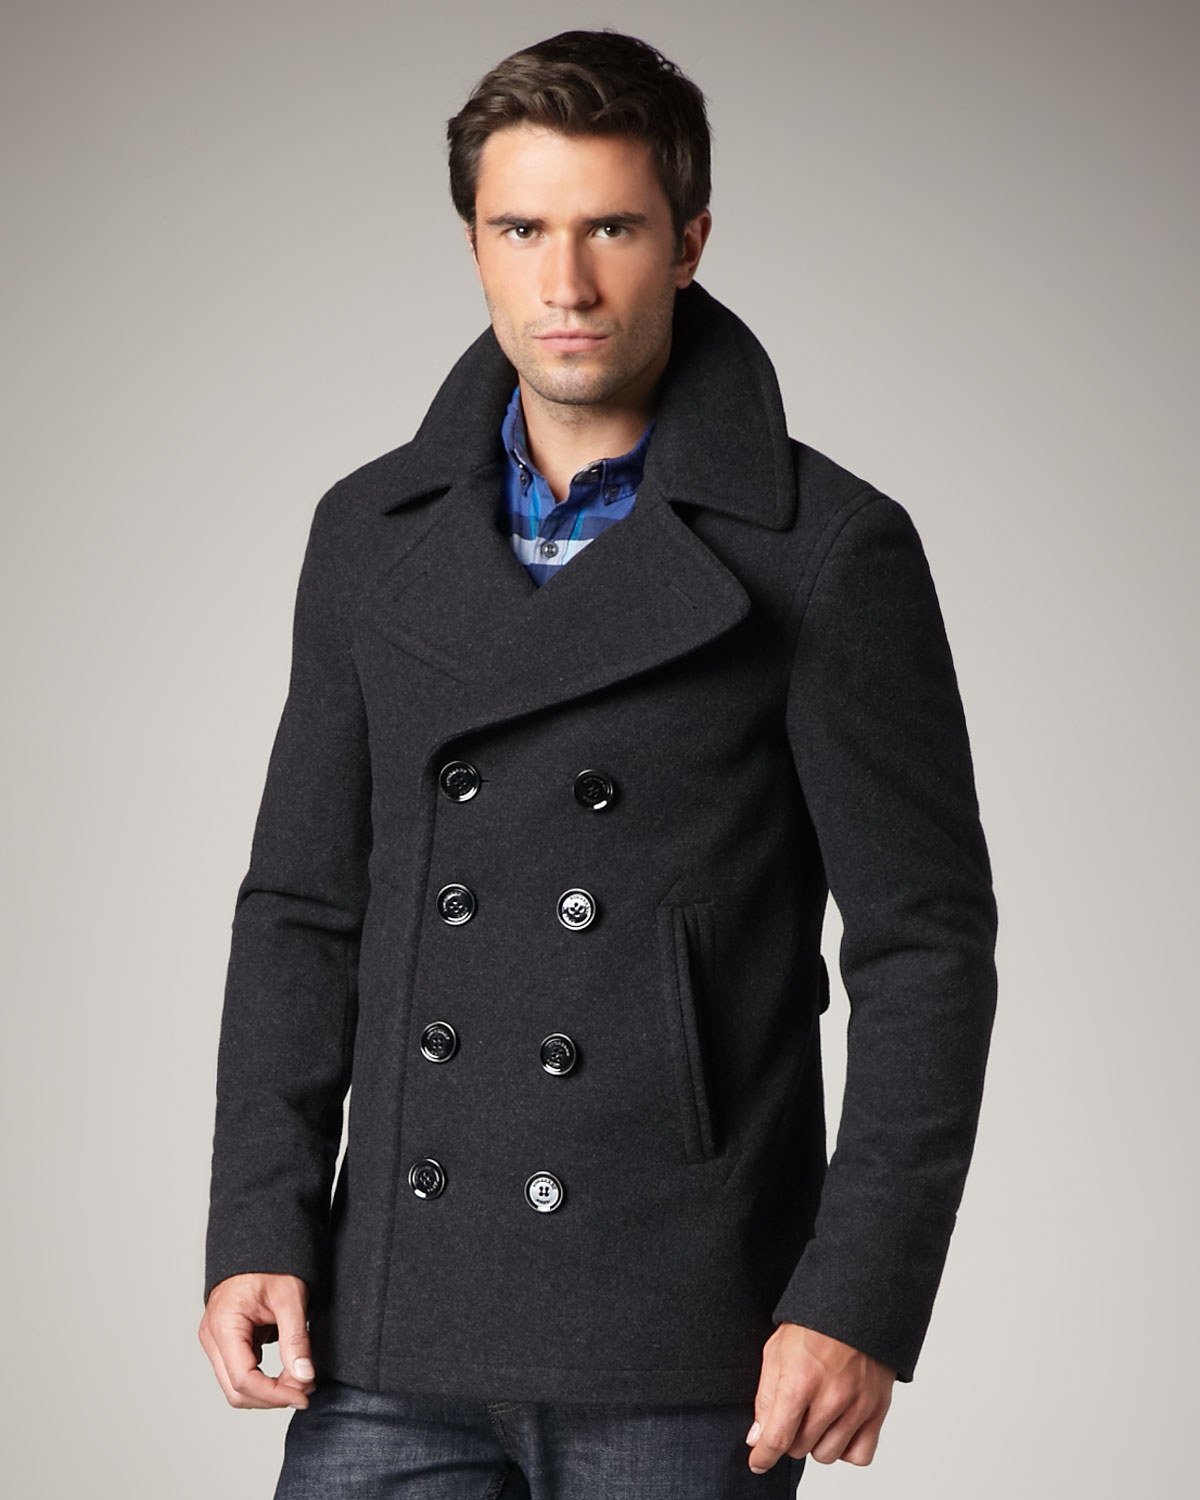 rusticzcountrysstylexhomedecor.tk: short pea coat. From The Community. Amazon Try Prime All WEEN CHARM Mens Short Single Breasted Trench Coat Pea Coat Overcoat Windbreaker Jacket. by WEEN CHARM. $ - $ $ 30 $ 35 99 Prime. FREE Shipping on eligible orders. Some sizes/colors are Prime eligible.